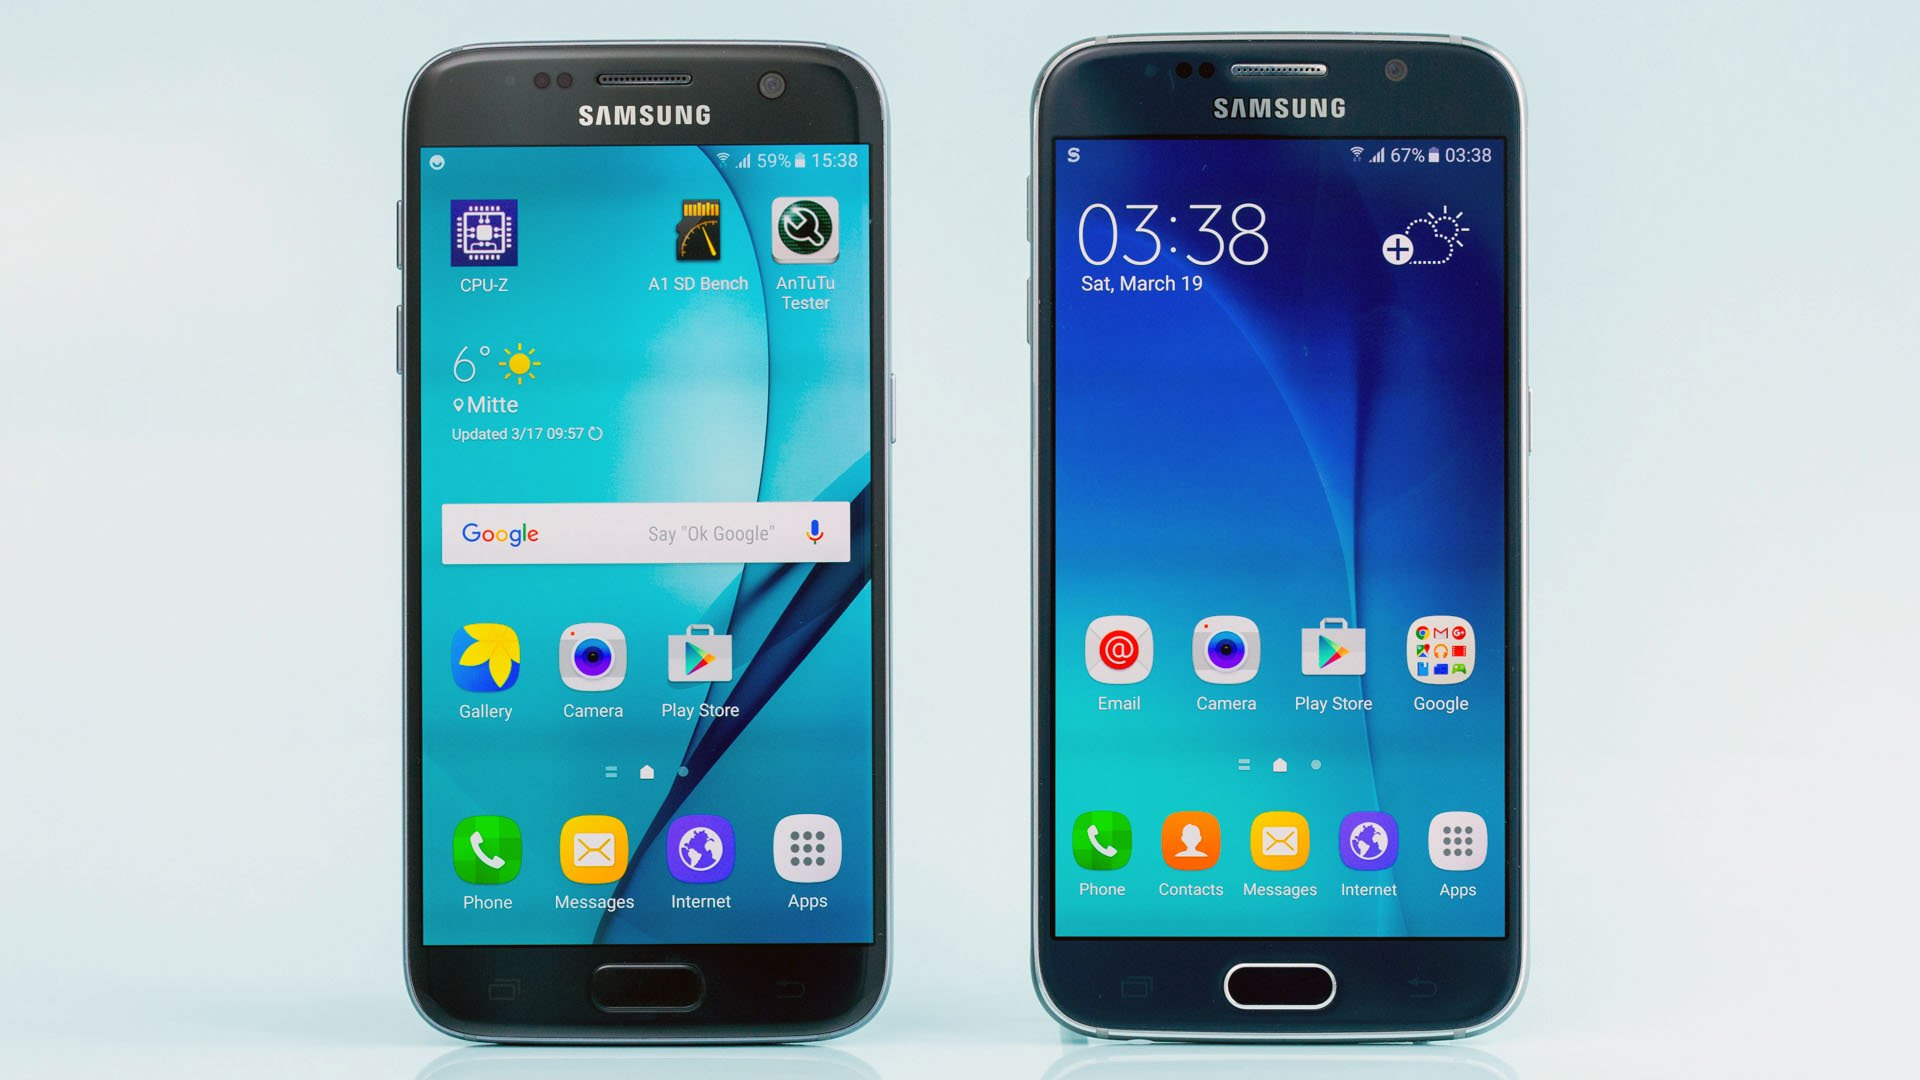 samsung galaxy s6 vs galaxy s7 comparison it 39 s that time. Black Bedroom Furniture Sets. Home Design Ideas